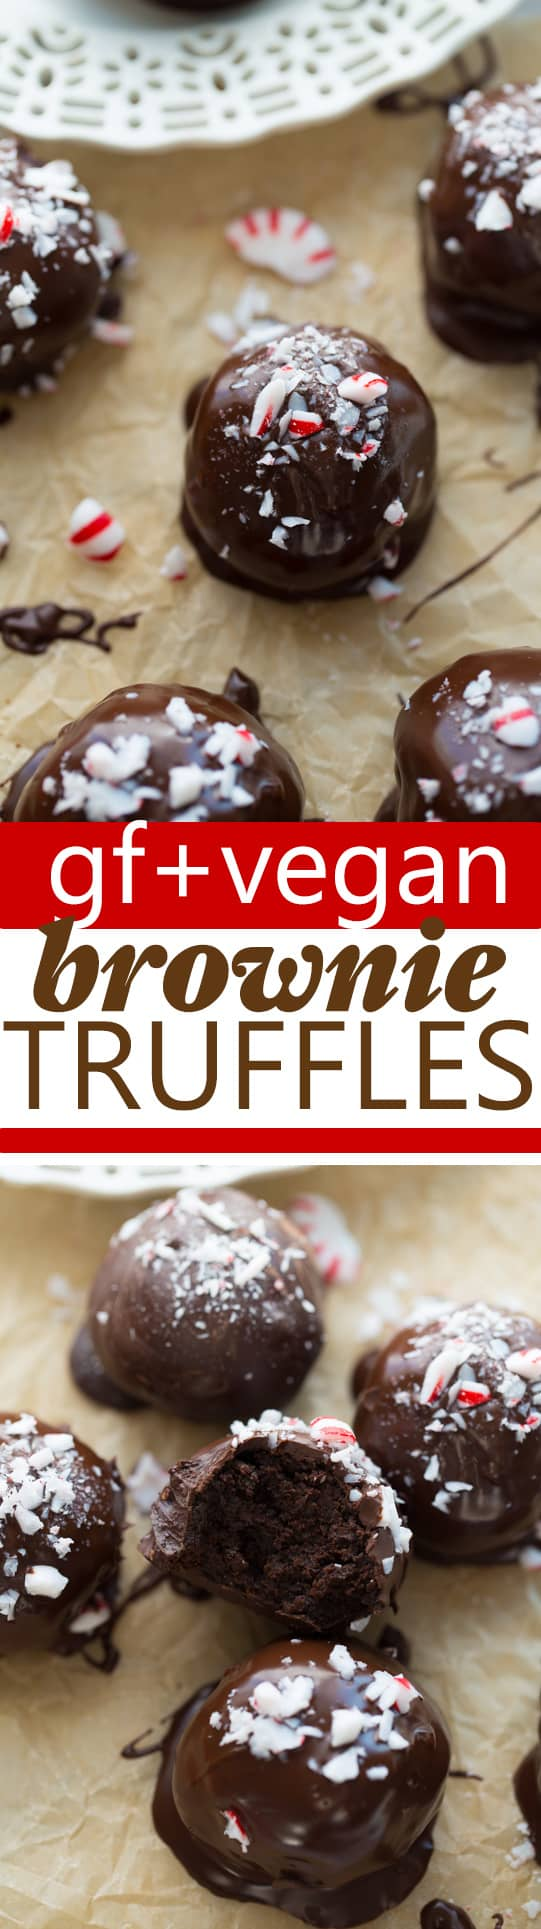 Gluten-Free, Vegan Peppermint Brownie Truffles! A rich, gooey brownie center coated in chocolate and peppermint. Dairy-Free, Nut-Free, Egg-Free and so easy to make!